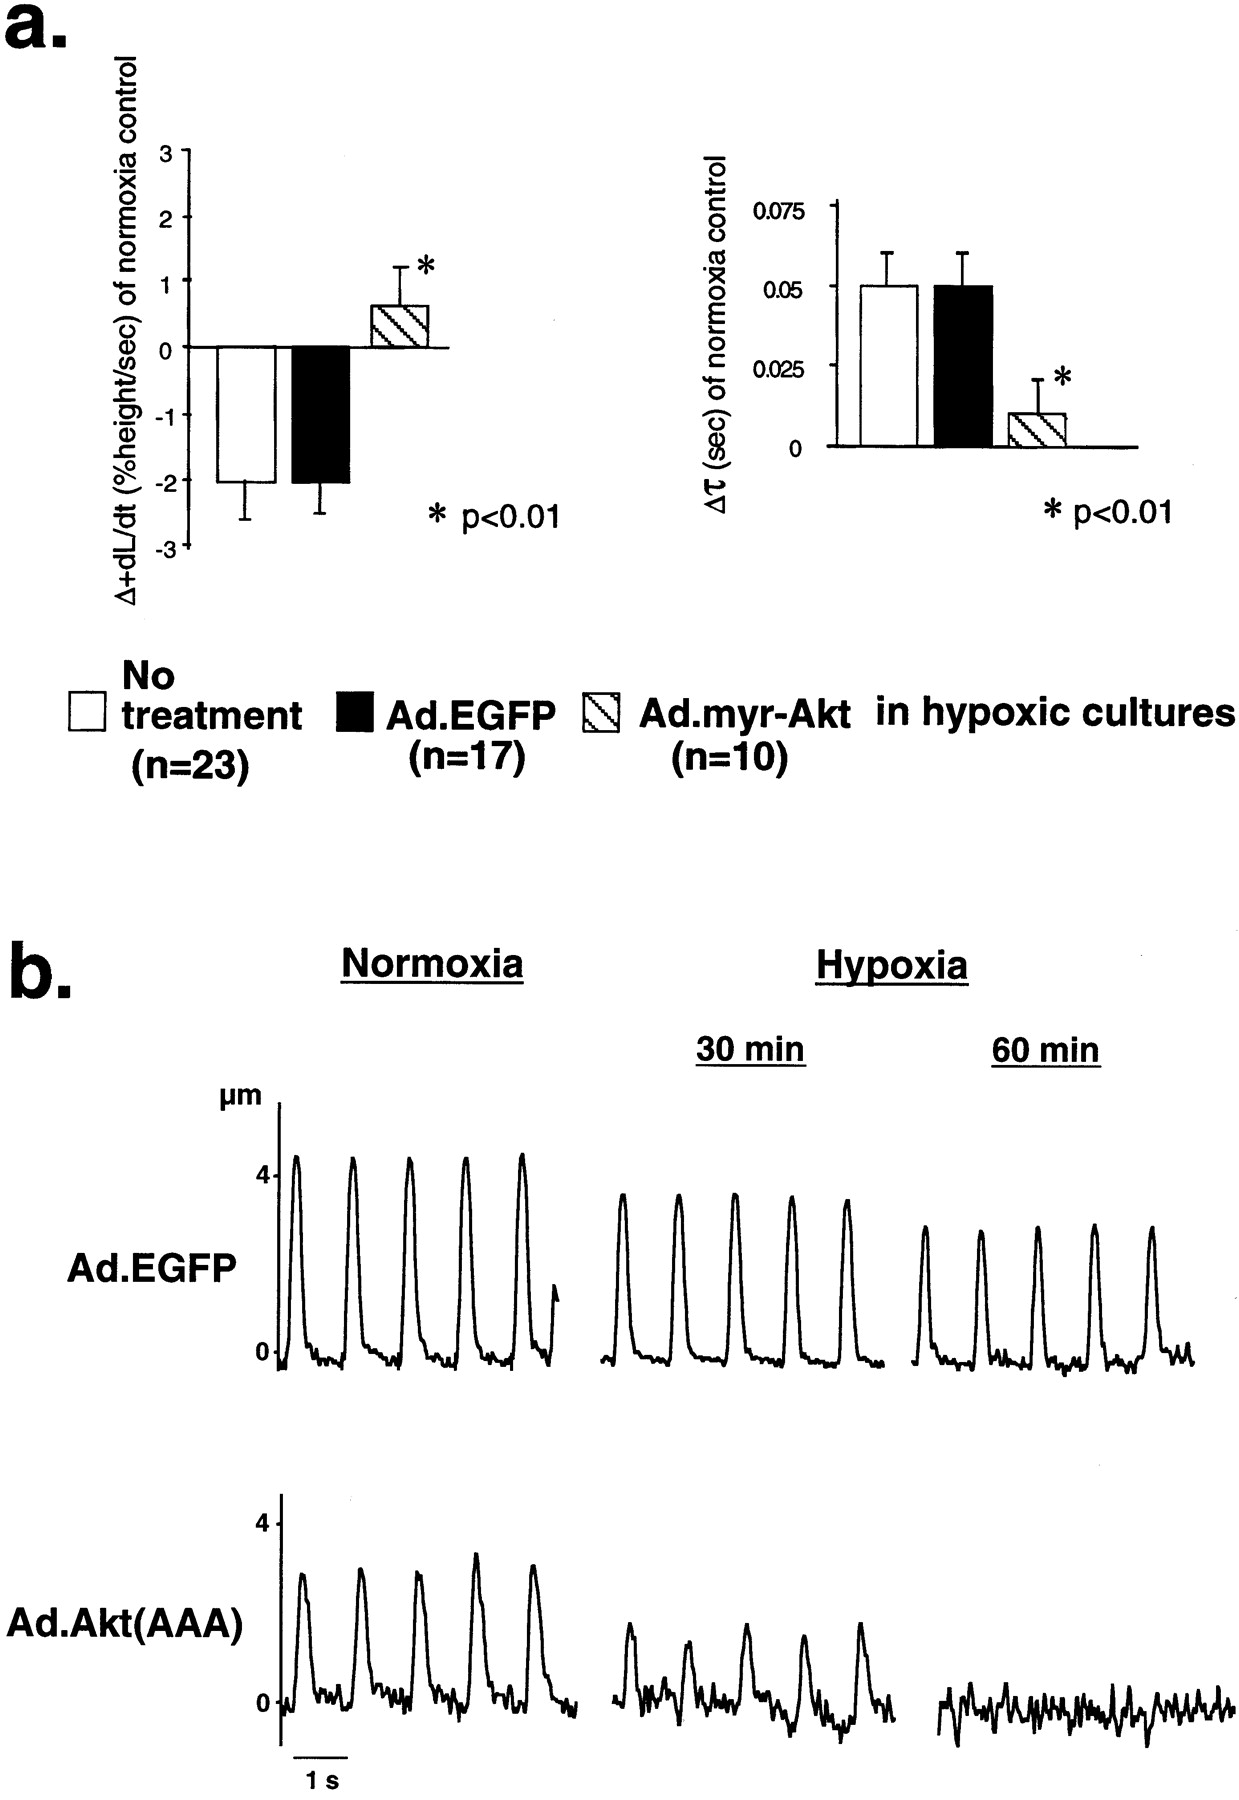 Akt Activation Preserves Cardiac Function and Prevents